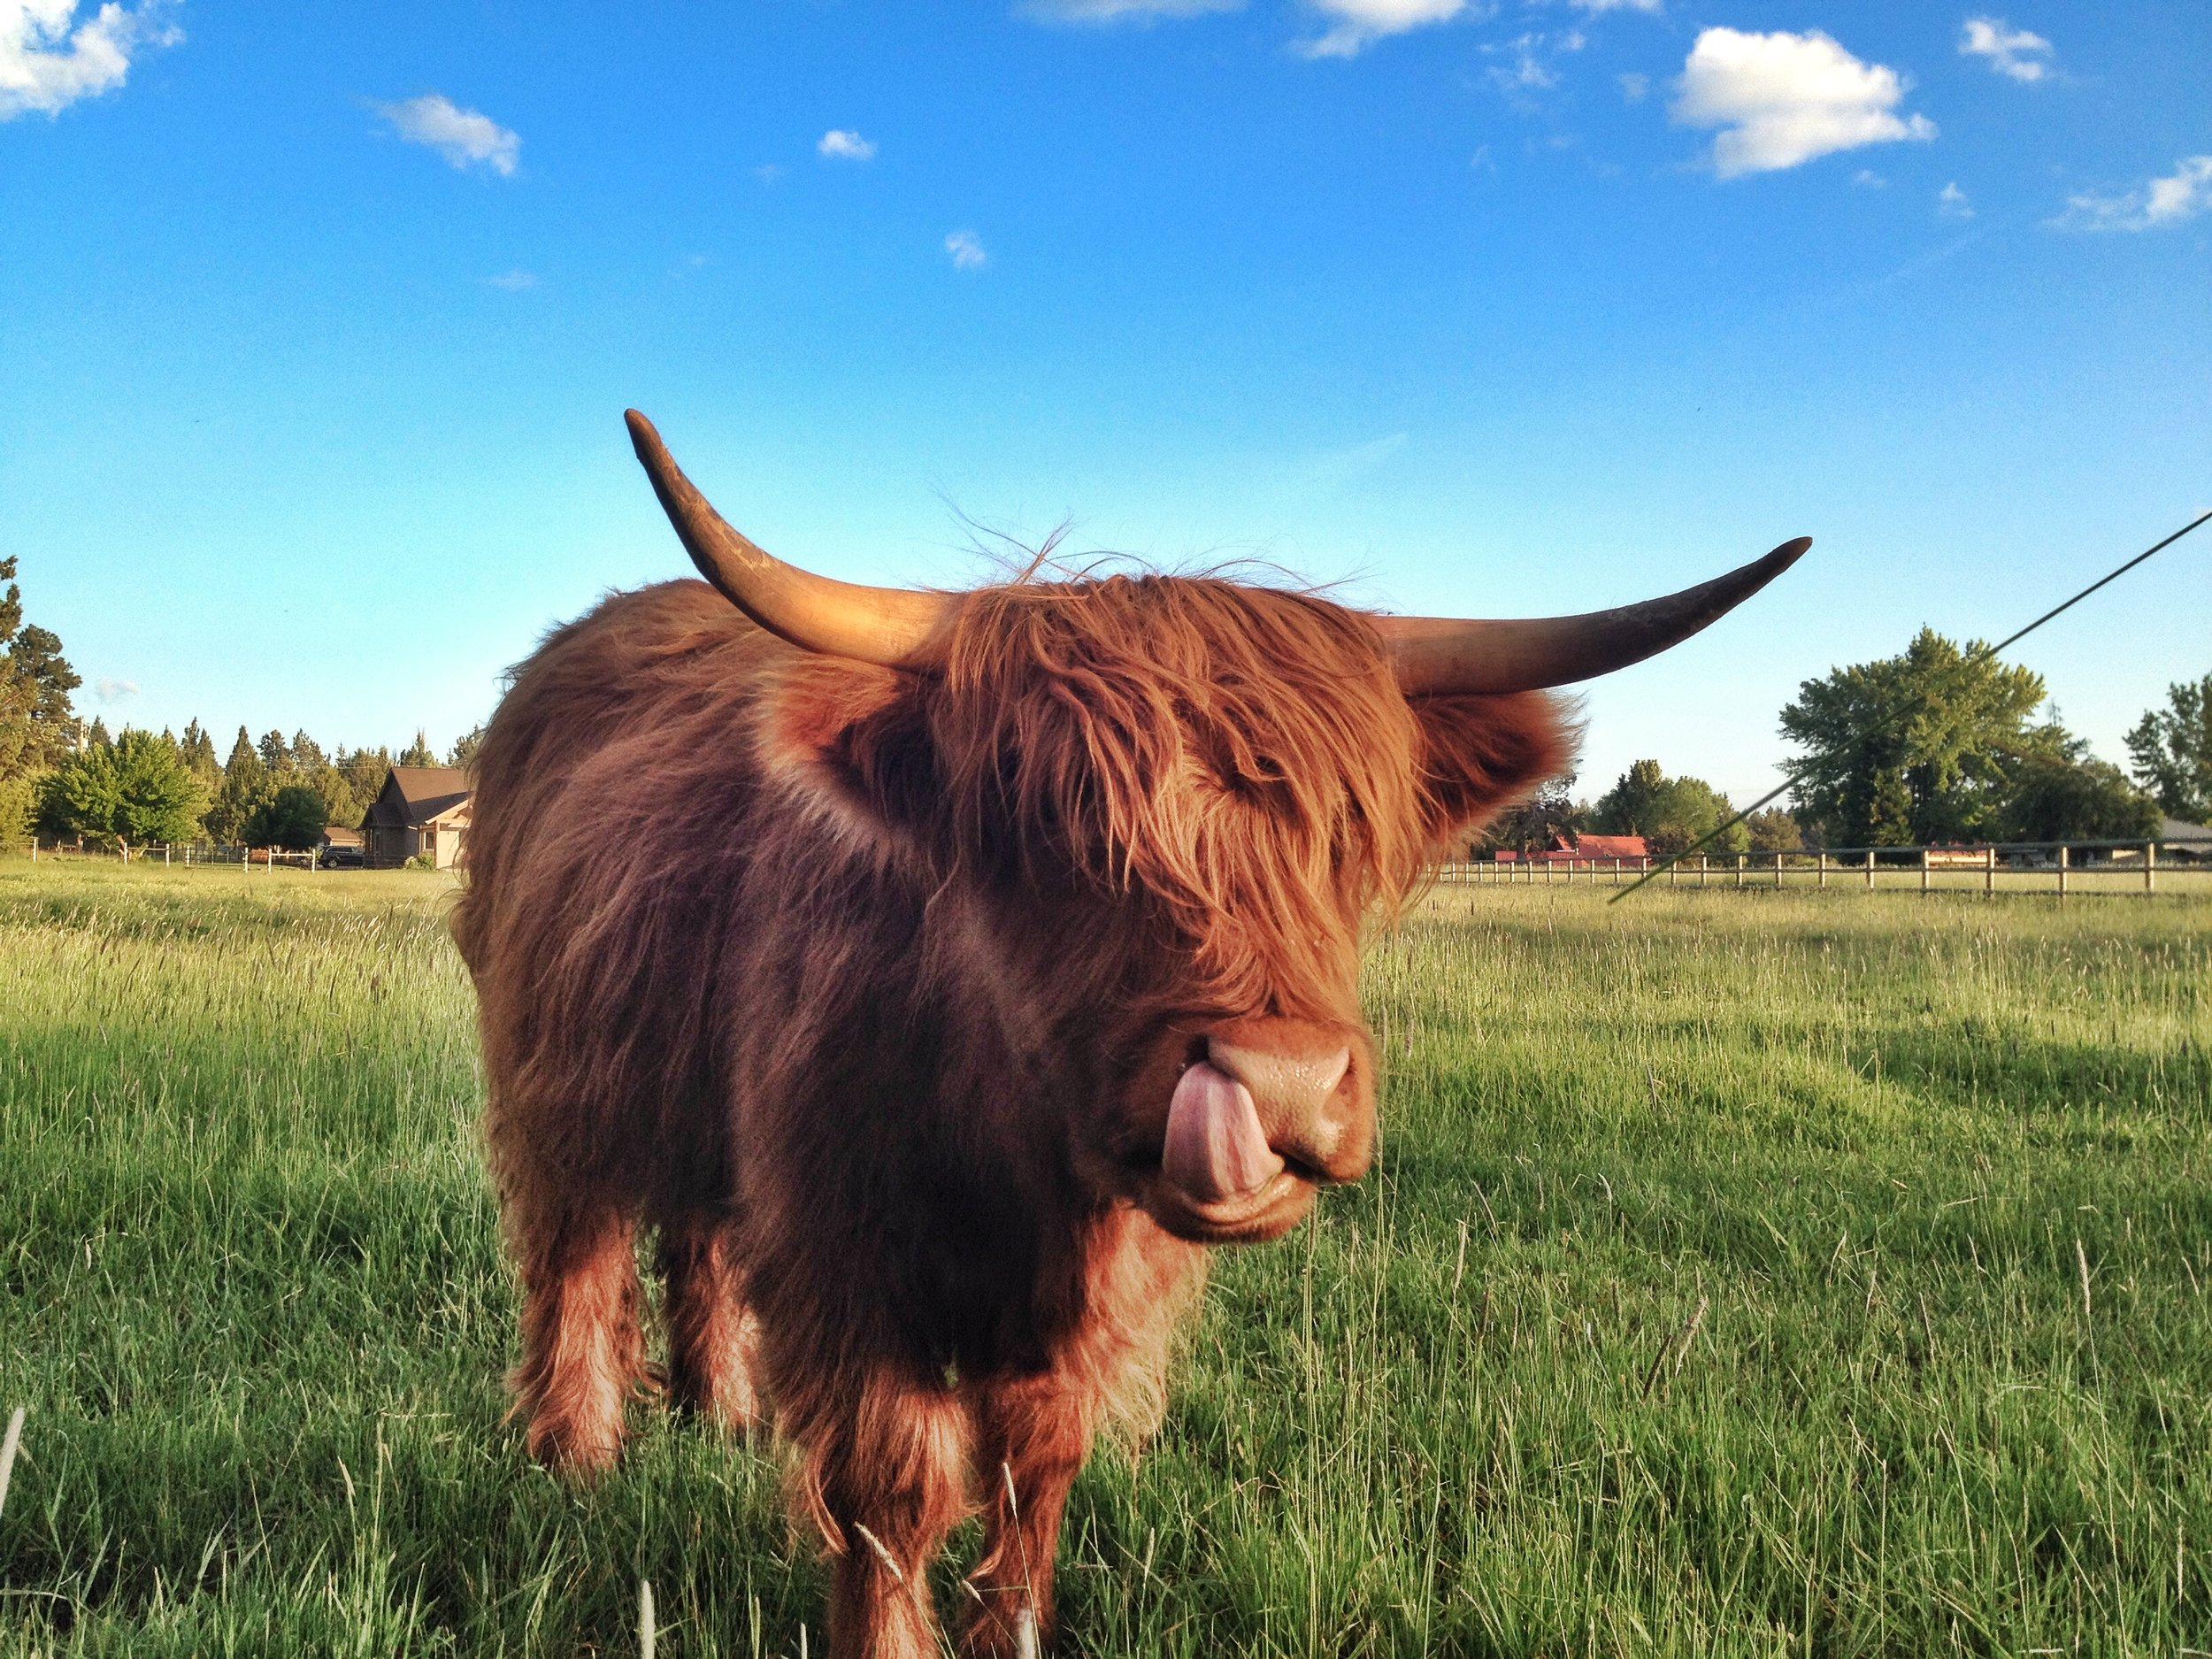 [Frangog, our favorite Scottish cow. After aday of success, we finally built up the nerve to pet him.]